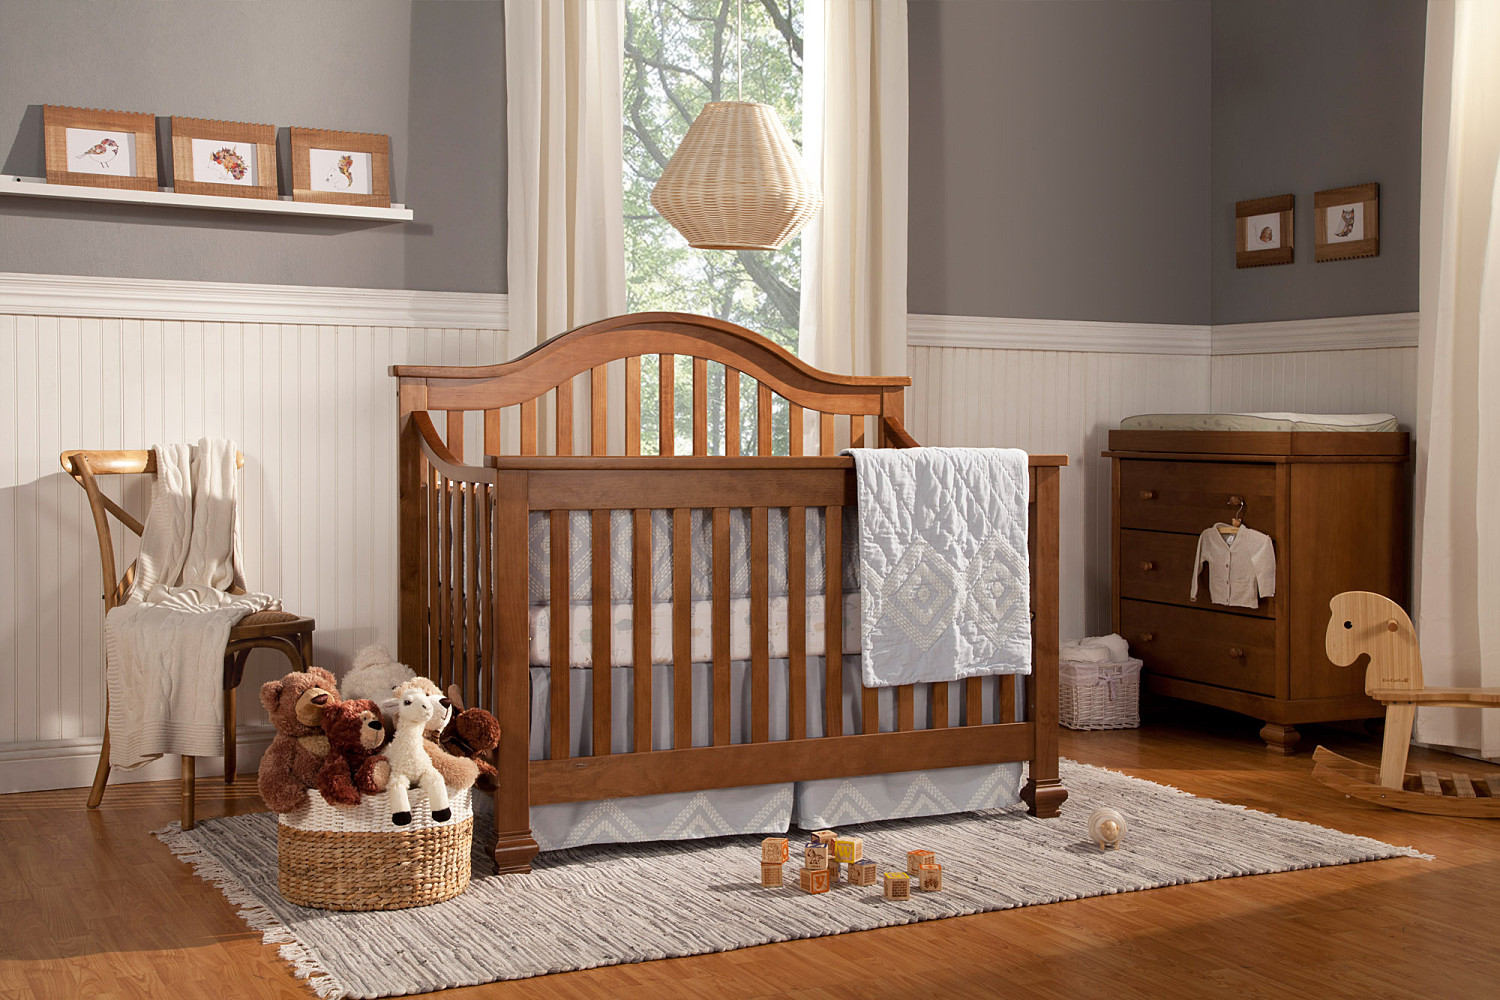 children's and baby furniture - baby furniture